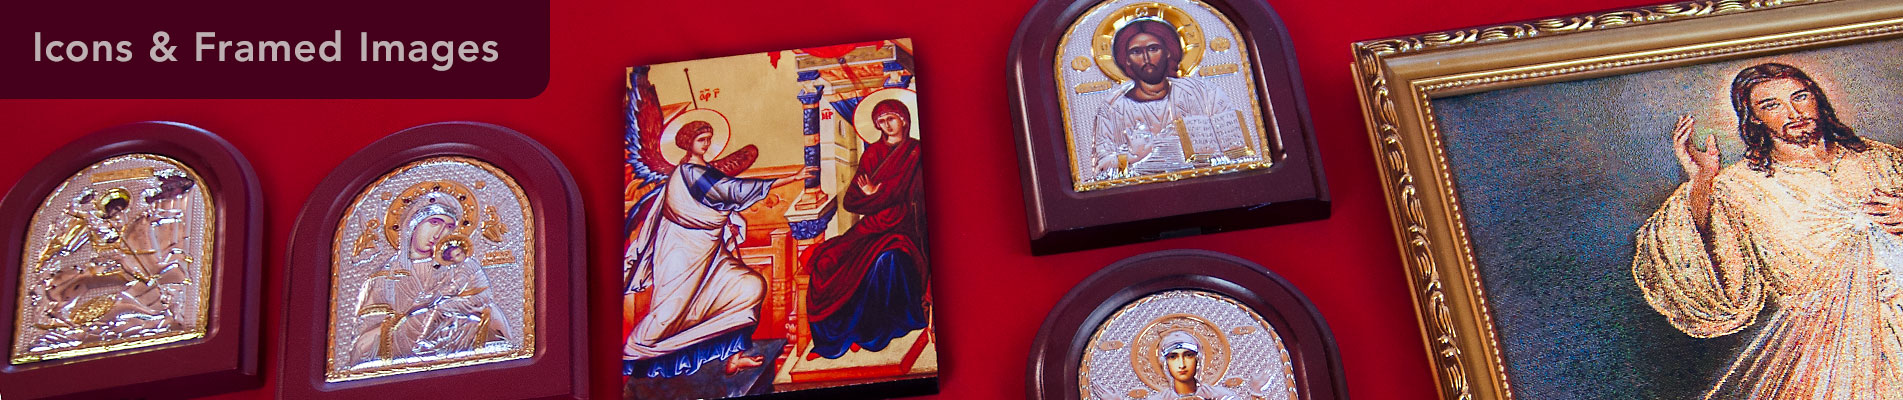 Icons & Framed Images